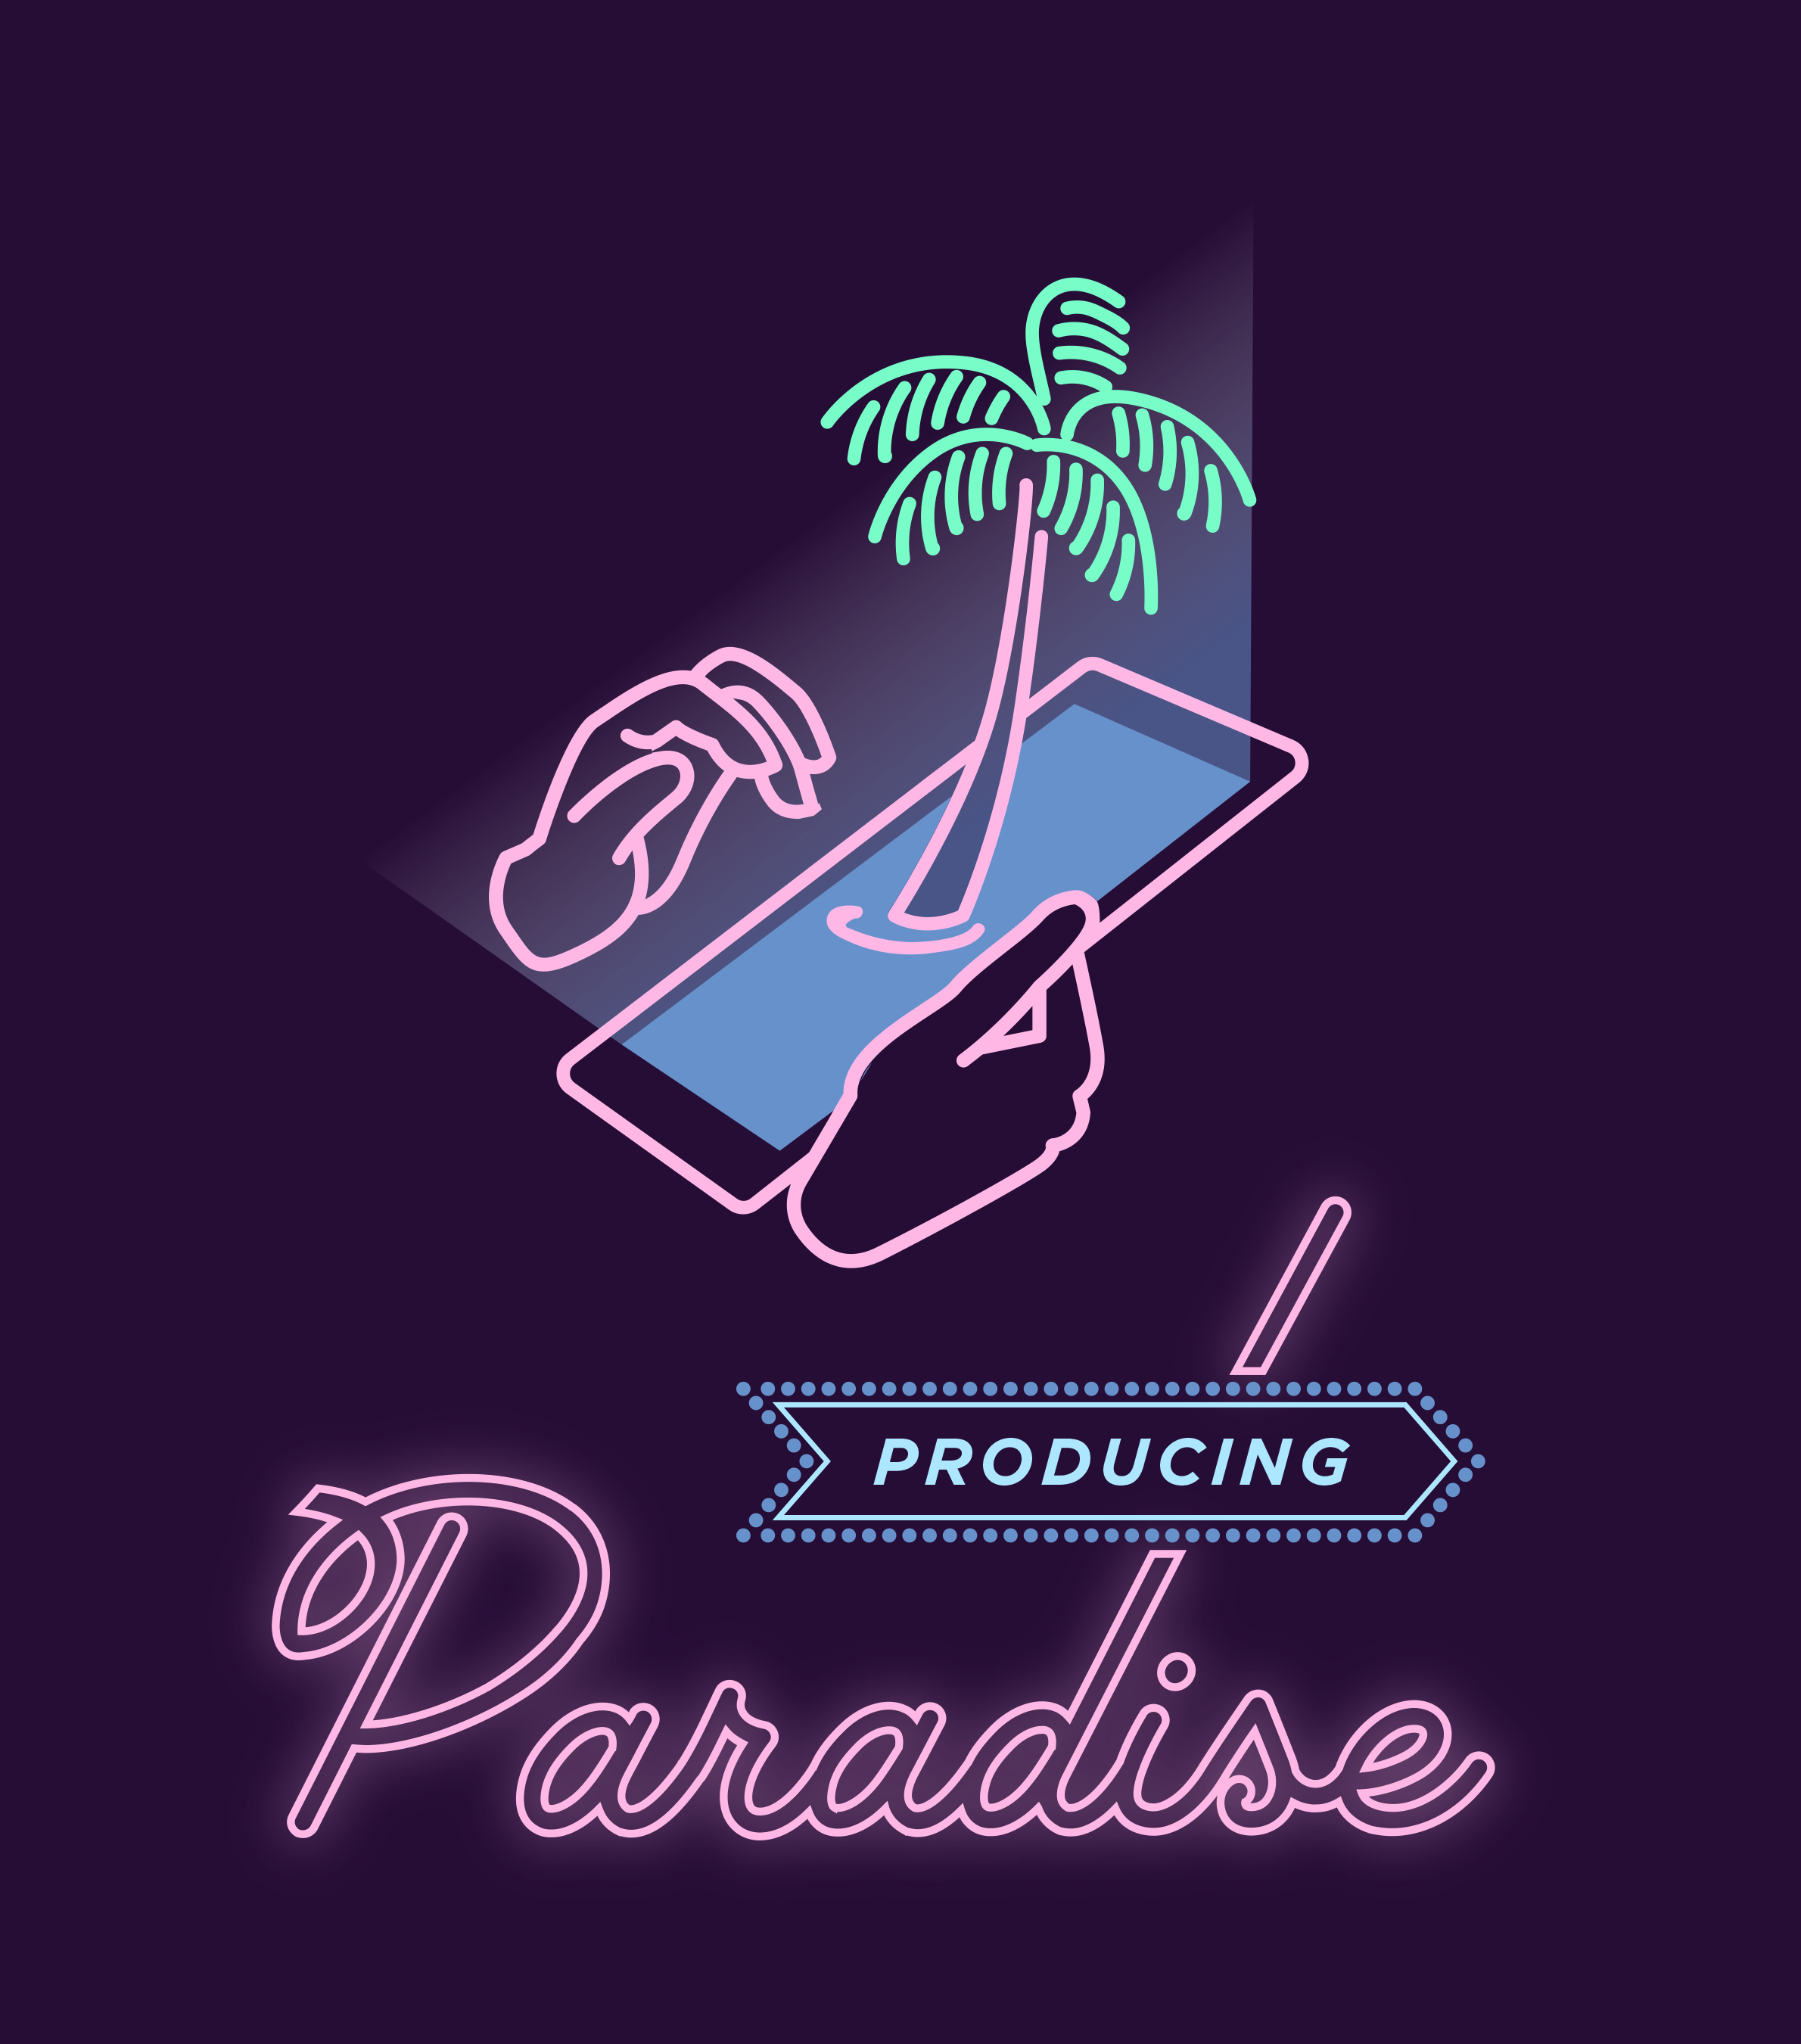 A deep purple background with neon looking pink line illustration of hands holding an iPhone with a palm tree seeming to grow out of the phone screen, and the words 'Producing Paradise' in neon signage style below